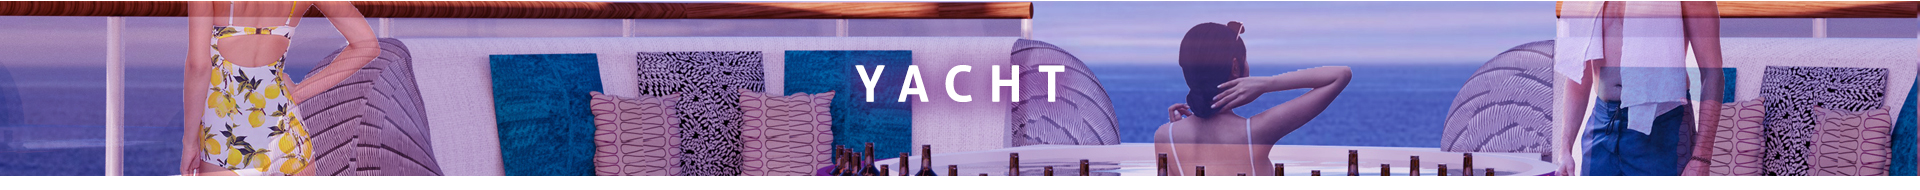 Yacht design projects banner